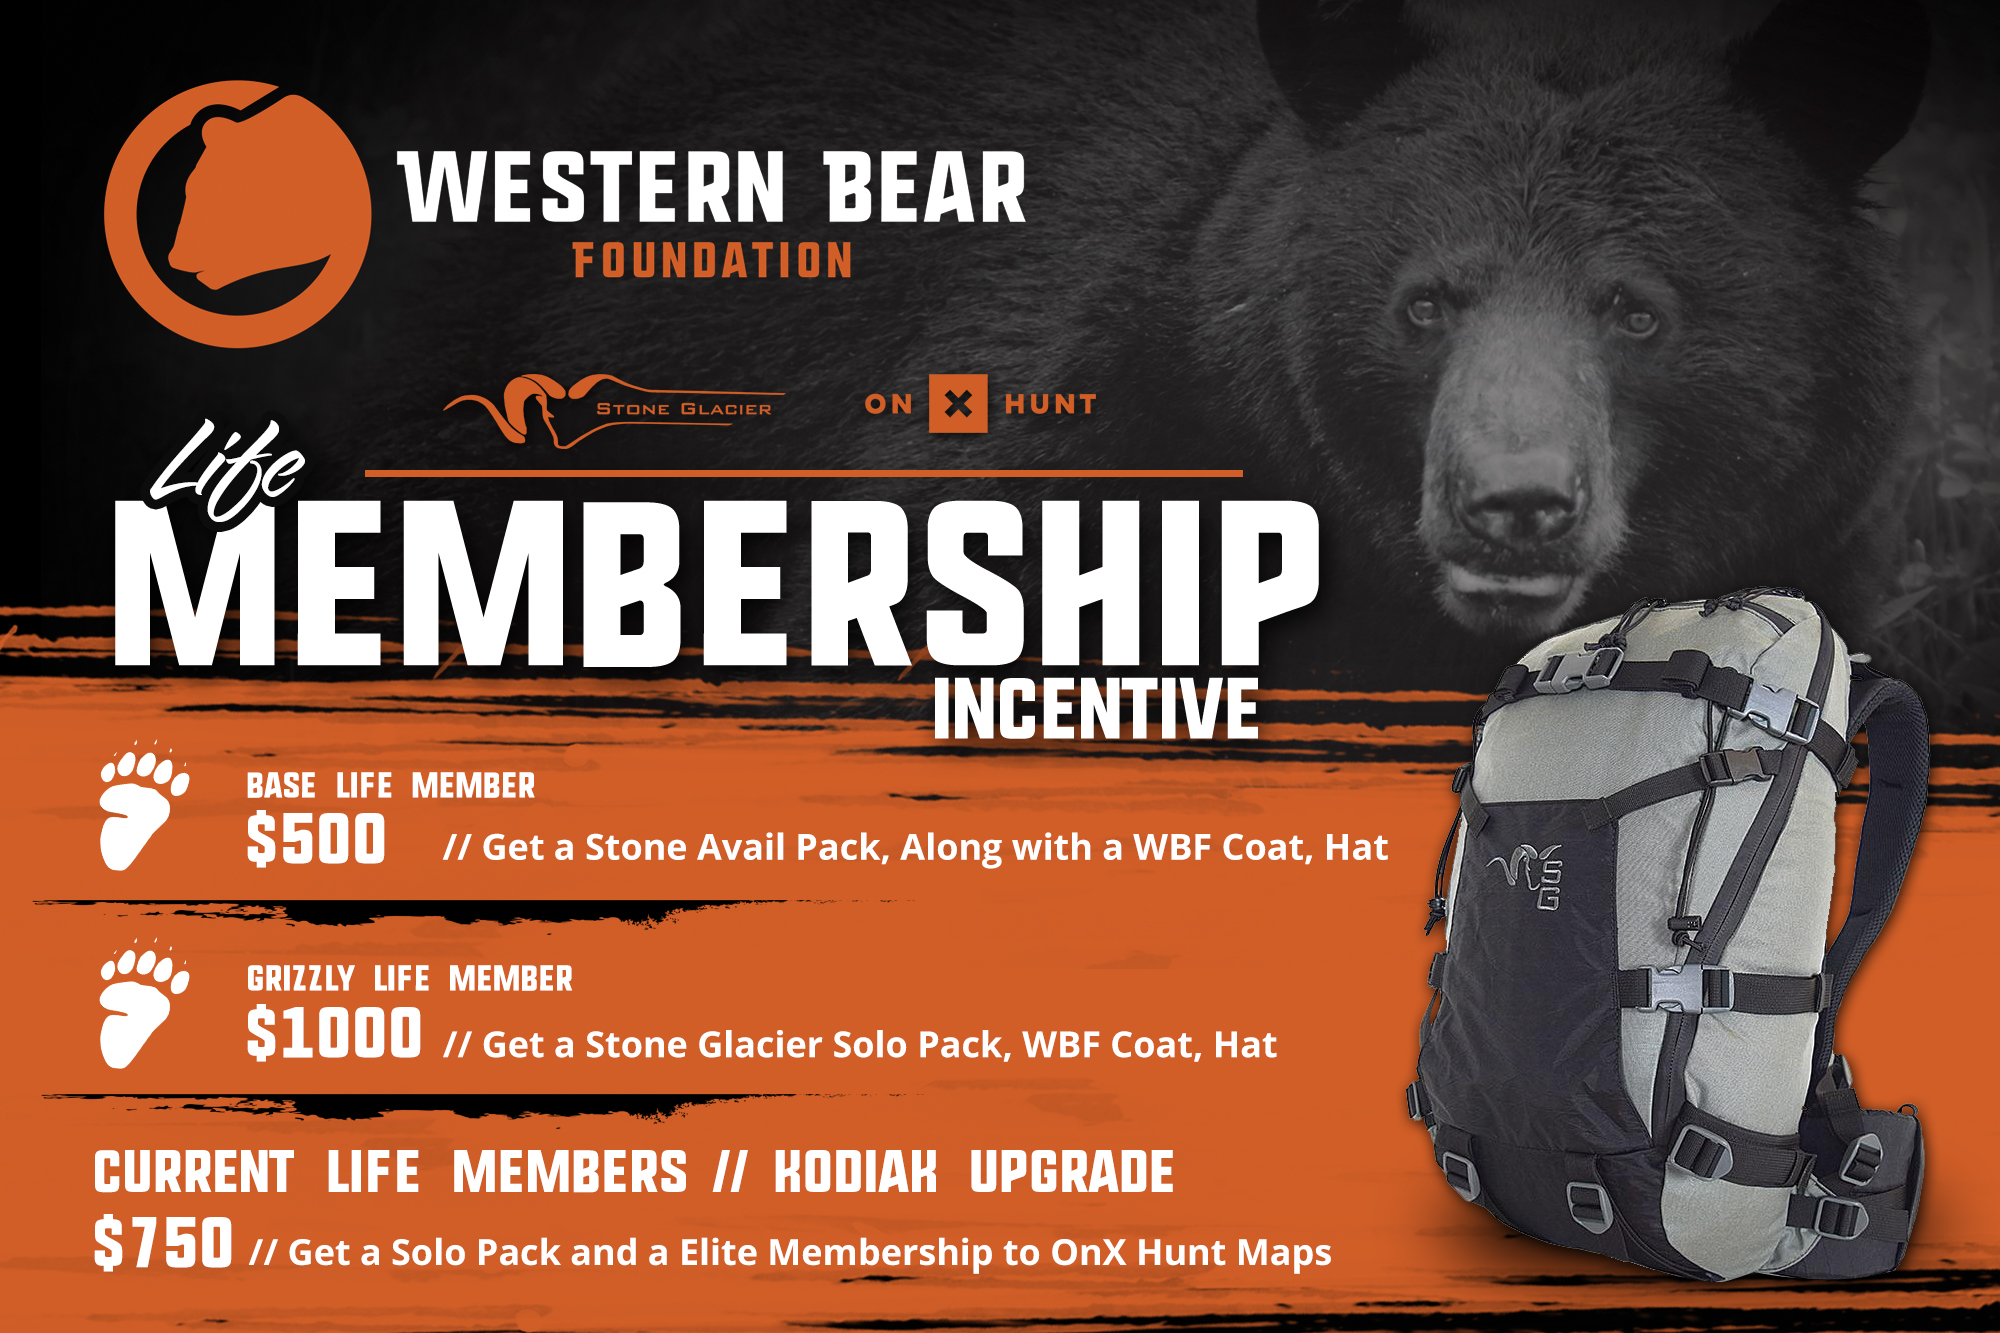 Western Bear Foundation Lifetime Membership Ad 2018